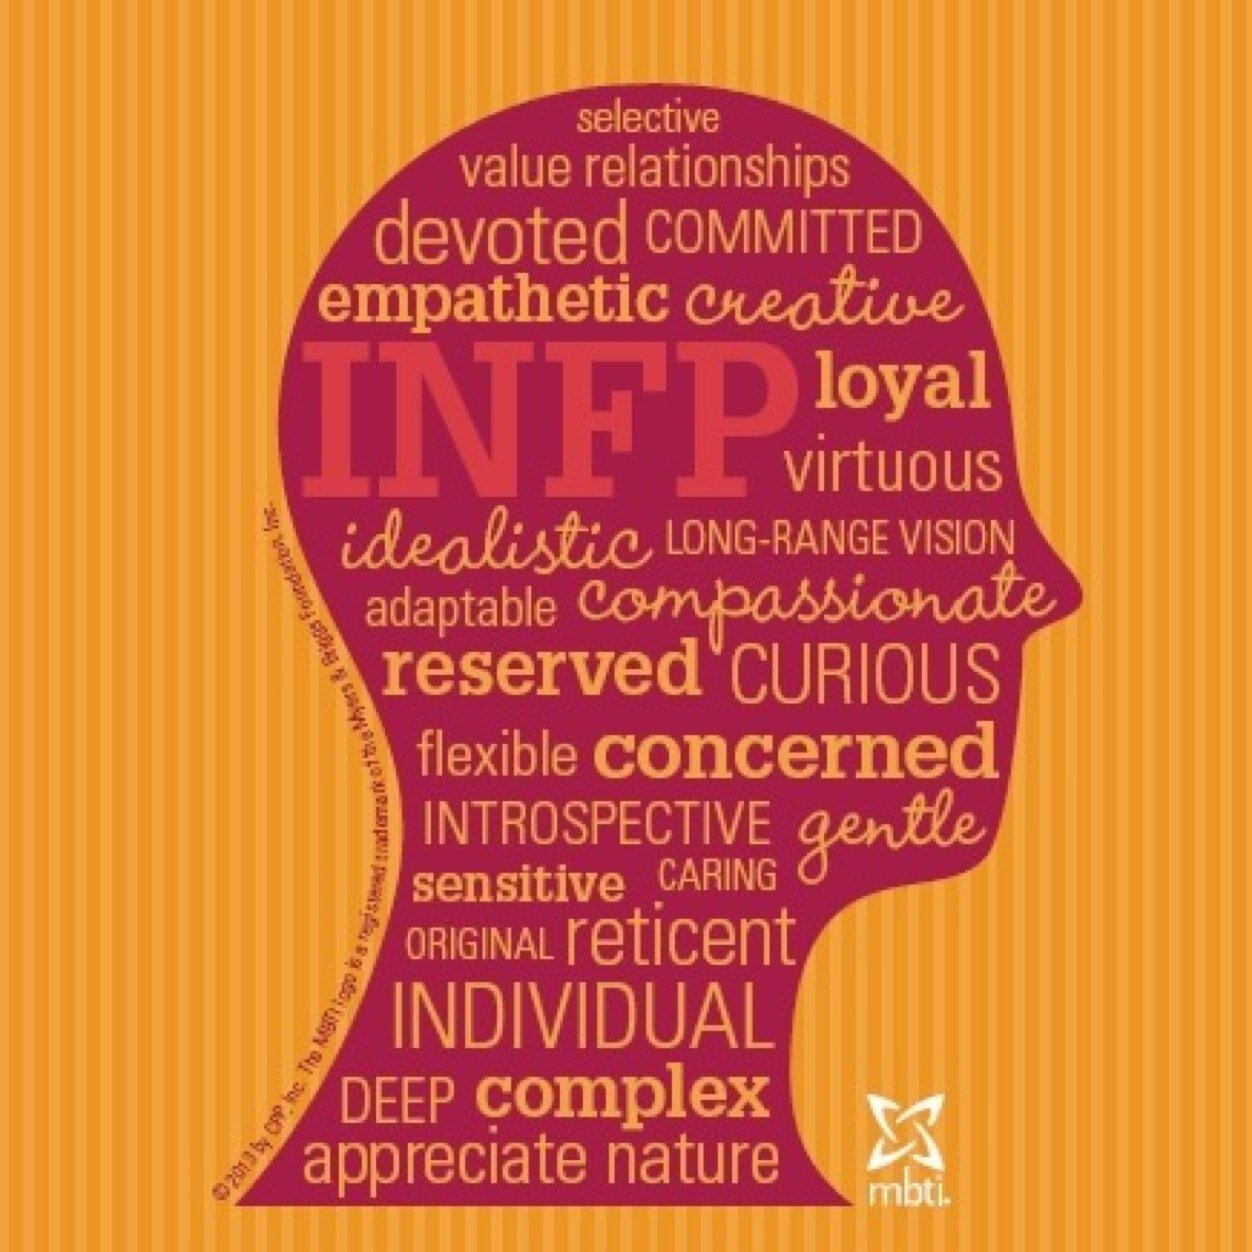 infp personality traits The infp personality type, one of the 16 personality types described by the myers-briggs personality test, is one of the rarer personality types.